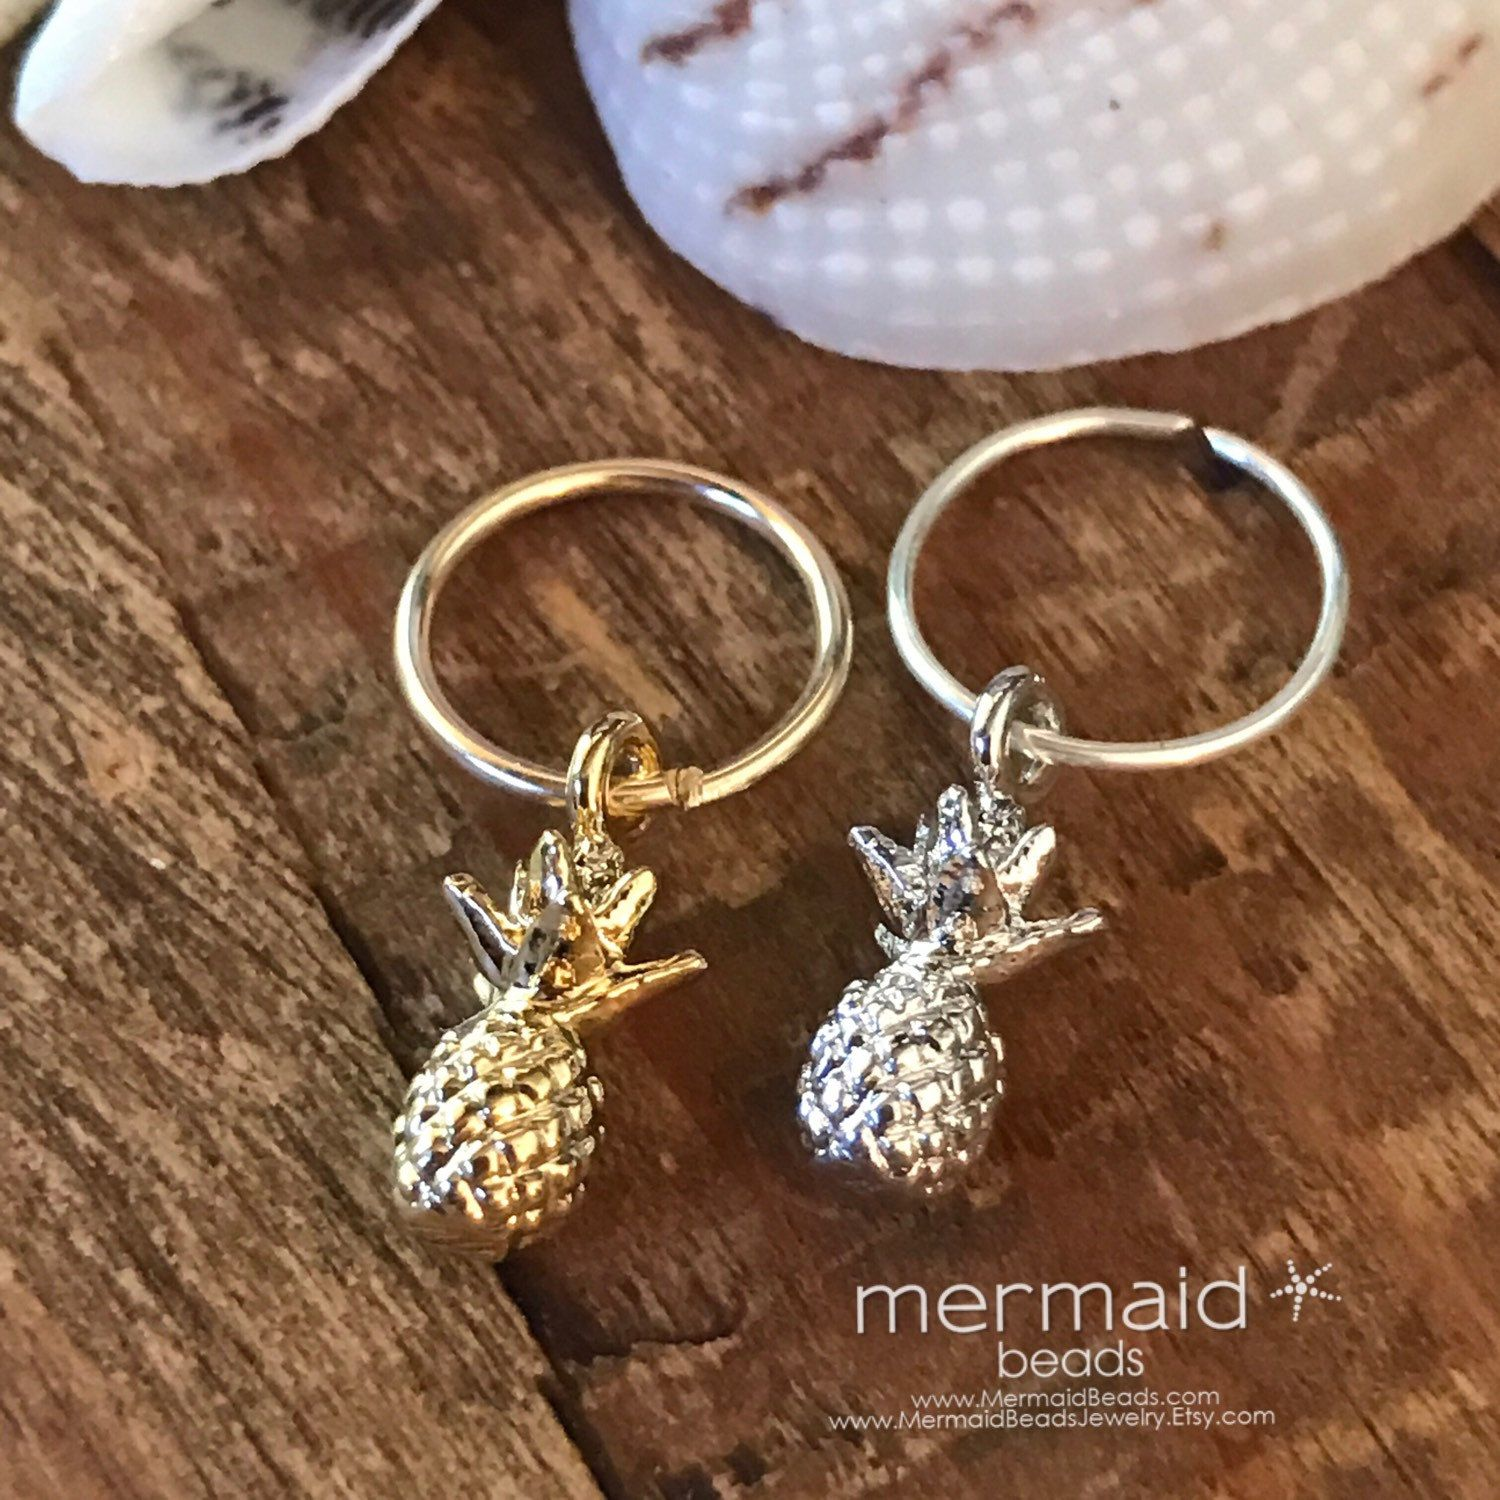 Tropical Summer Outdoors Party Cartilage Earring Septum Ring Pineapple Hoop  Endless Gold Silver Tiny Tragus Helix Nose Hex Piercing Gift